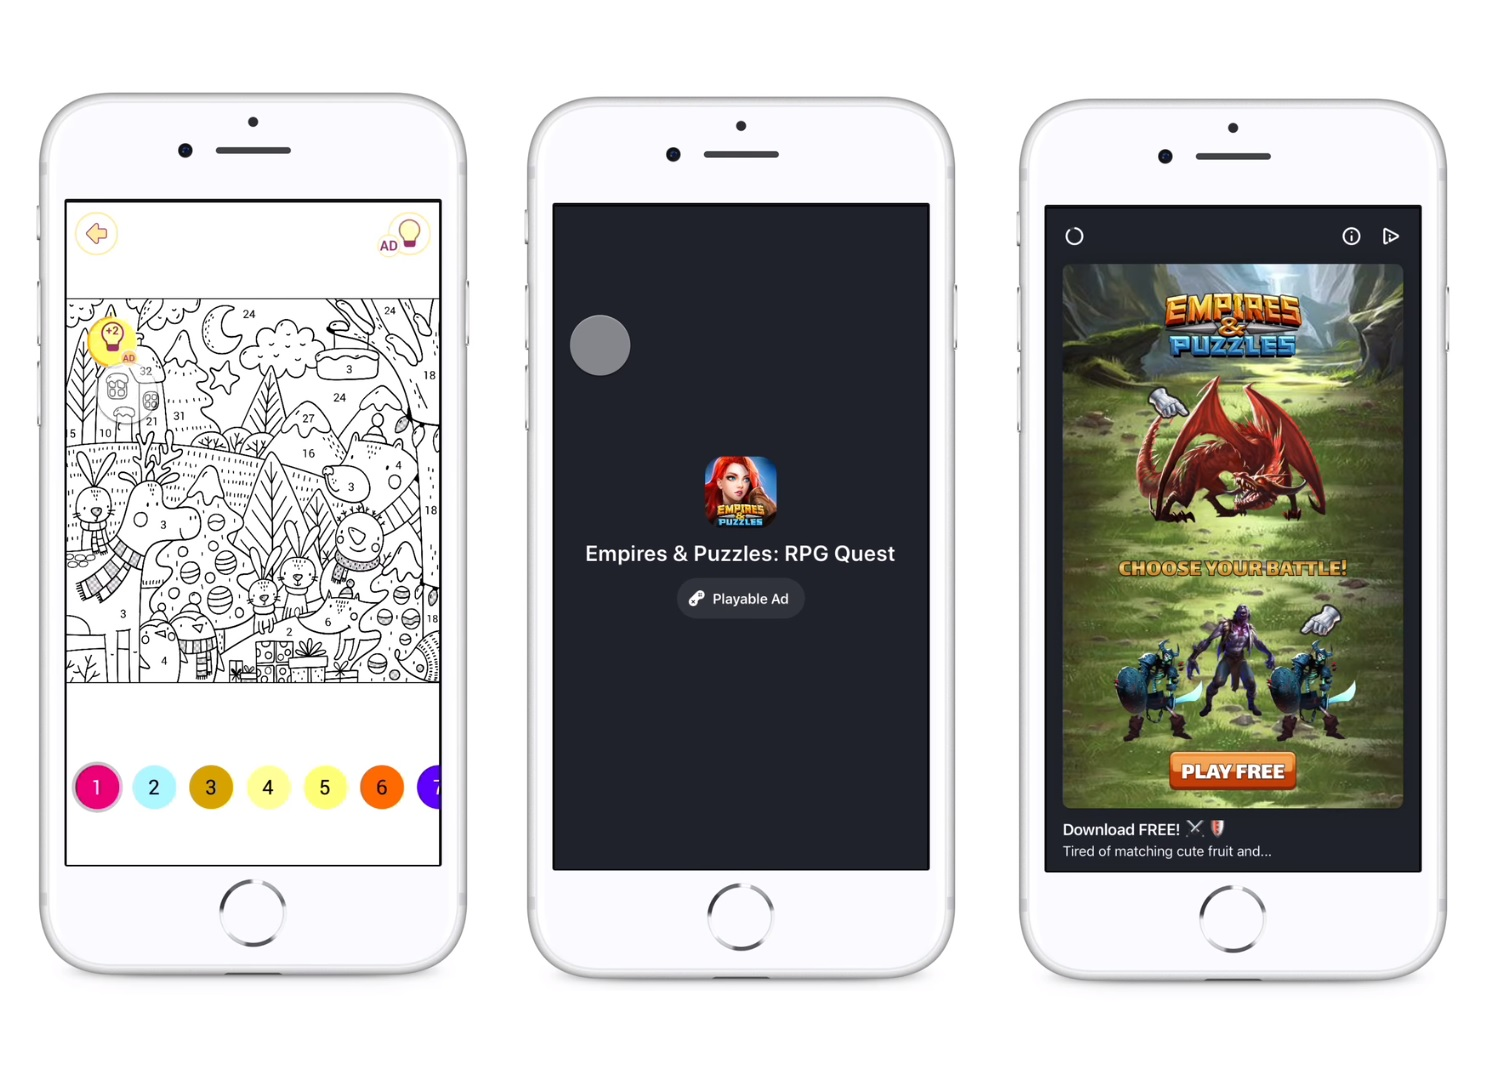 Facebook Allows Game Publishers to Earn More through